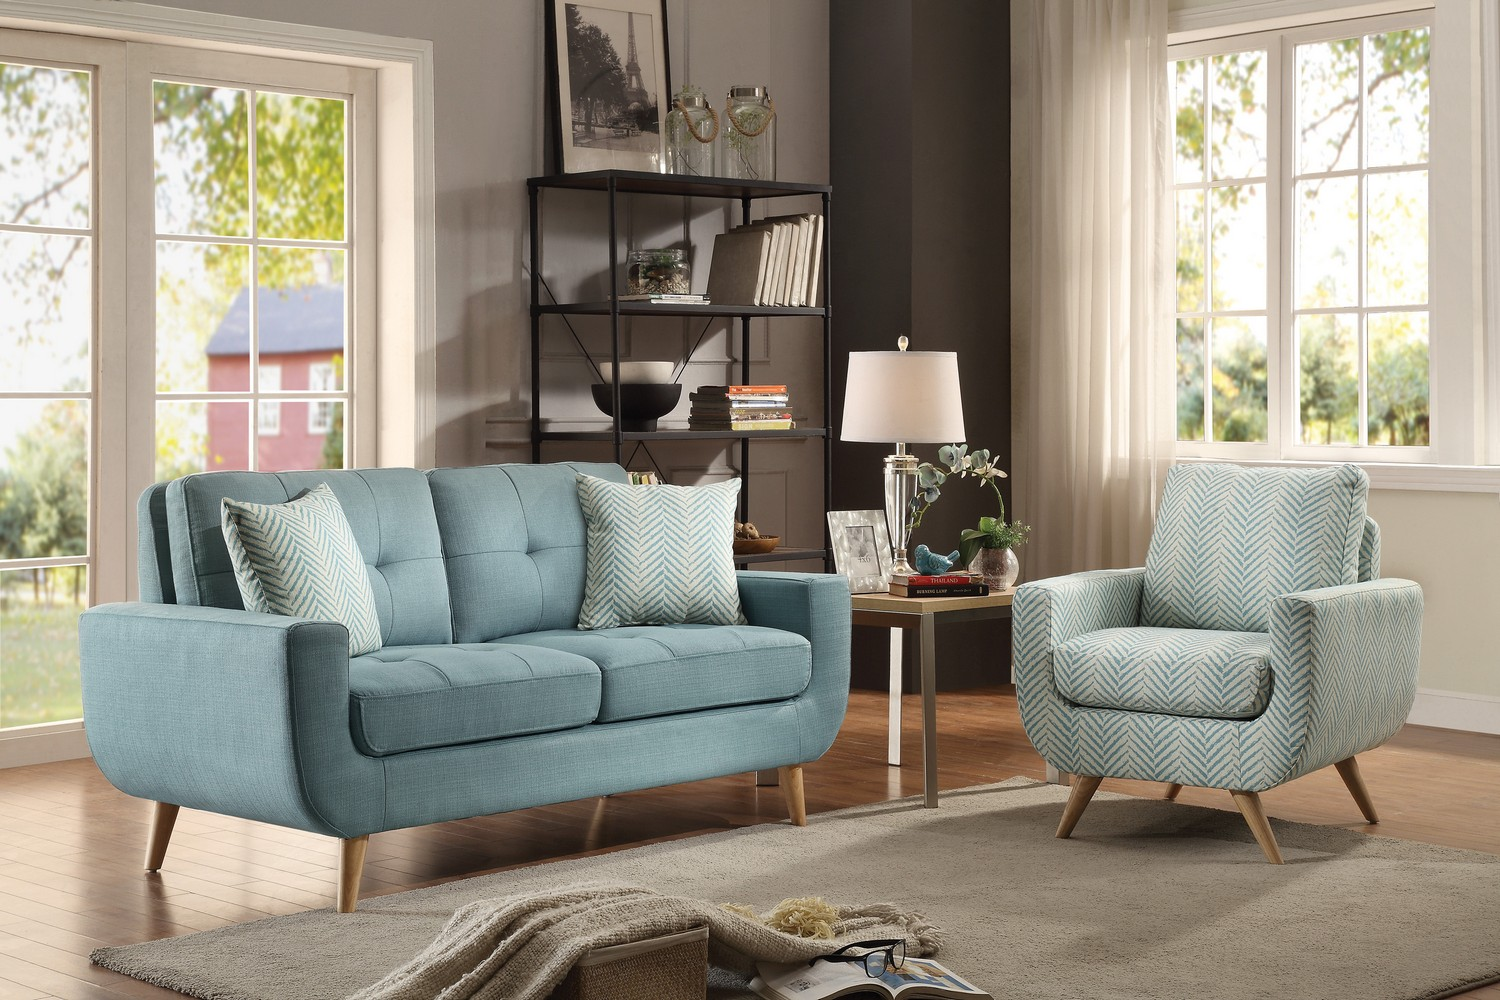 Homelegance Deryn Sofa Set - Polyester - Teal